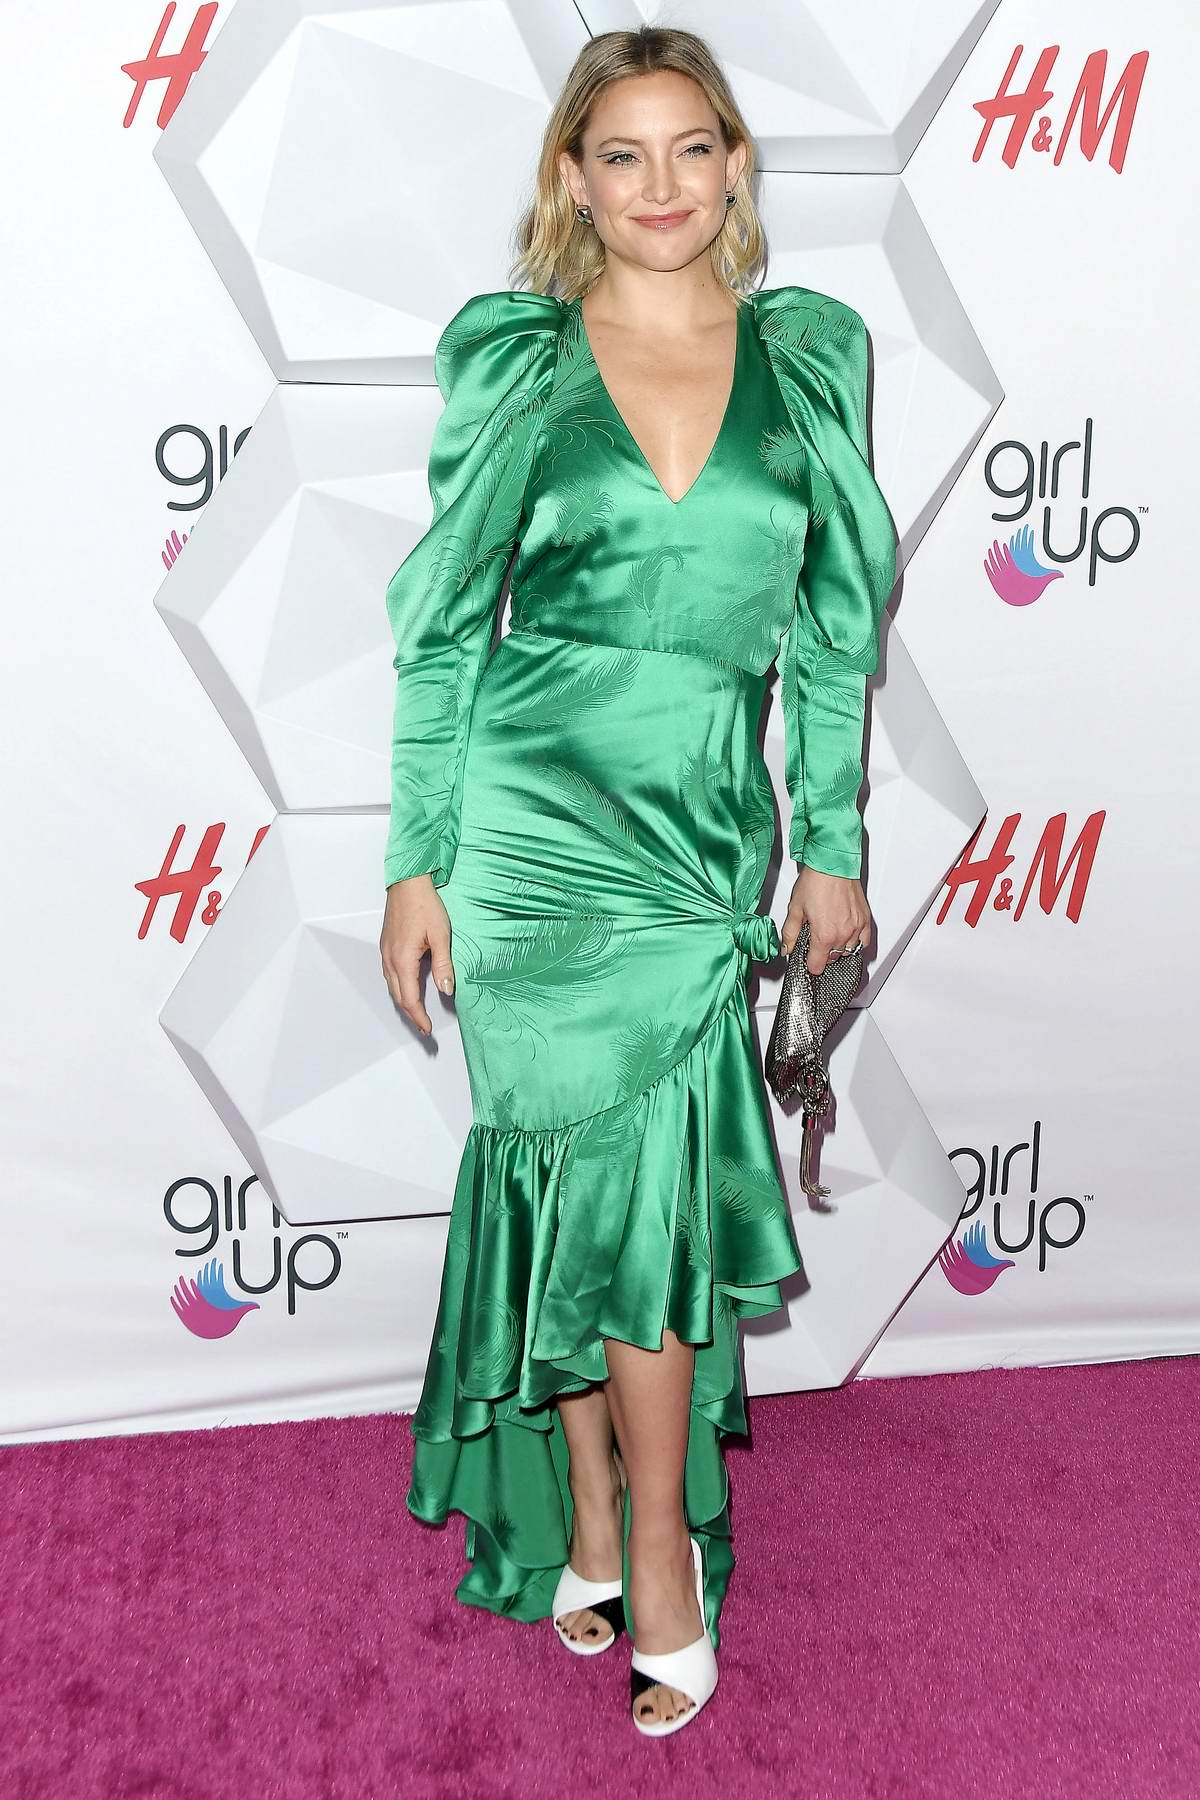 Kate Hudson attends the 2nd Annual Girl Up #GirlHero Awards at the Beverly Wilshire Hotel in Beverly Hills, Los Angeles